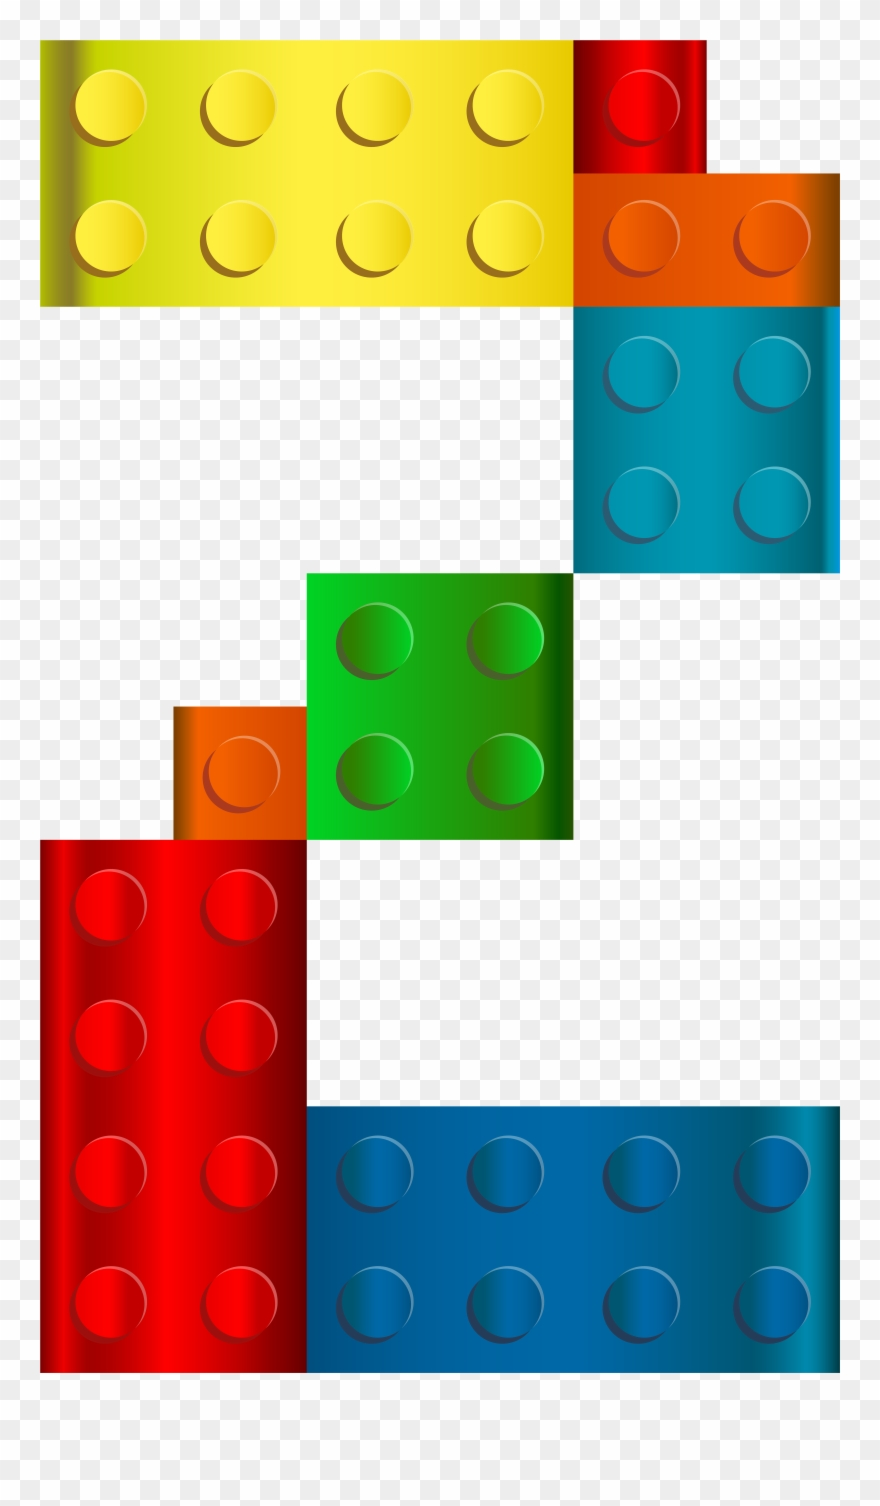 Lego png transparent clip. Number 1 clipart two